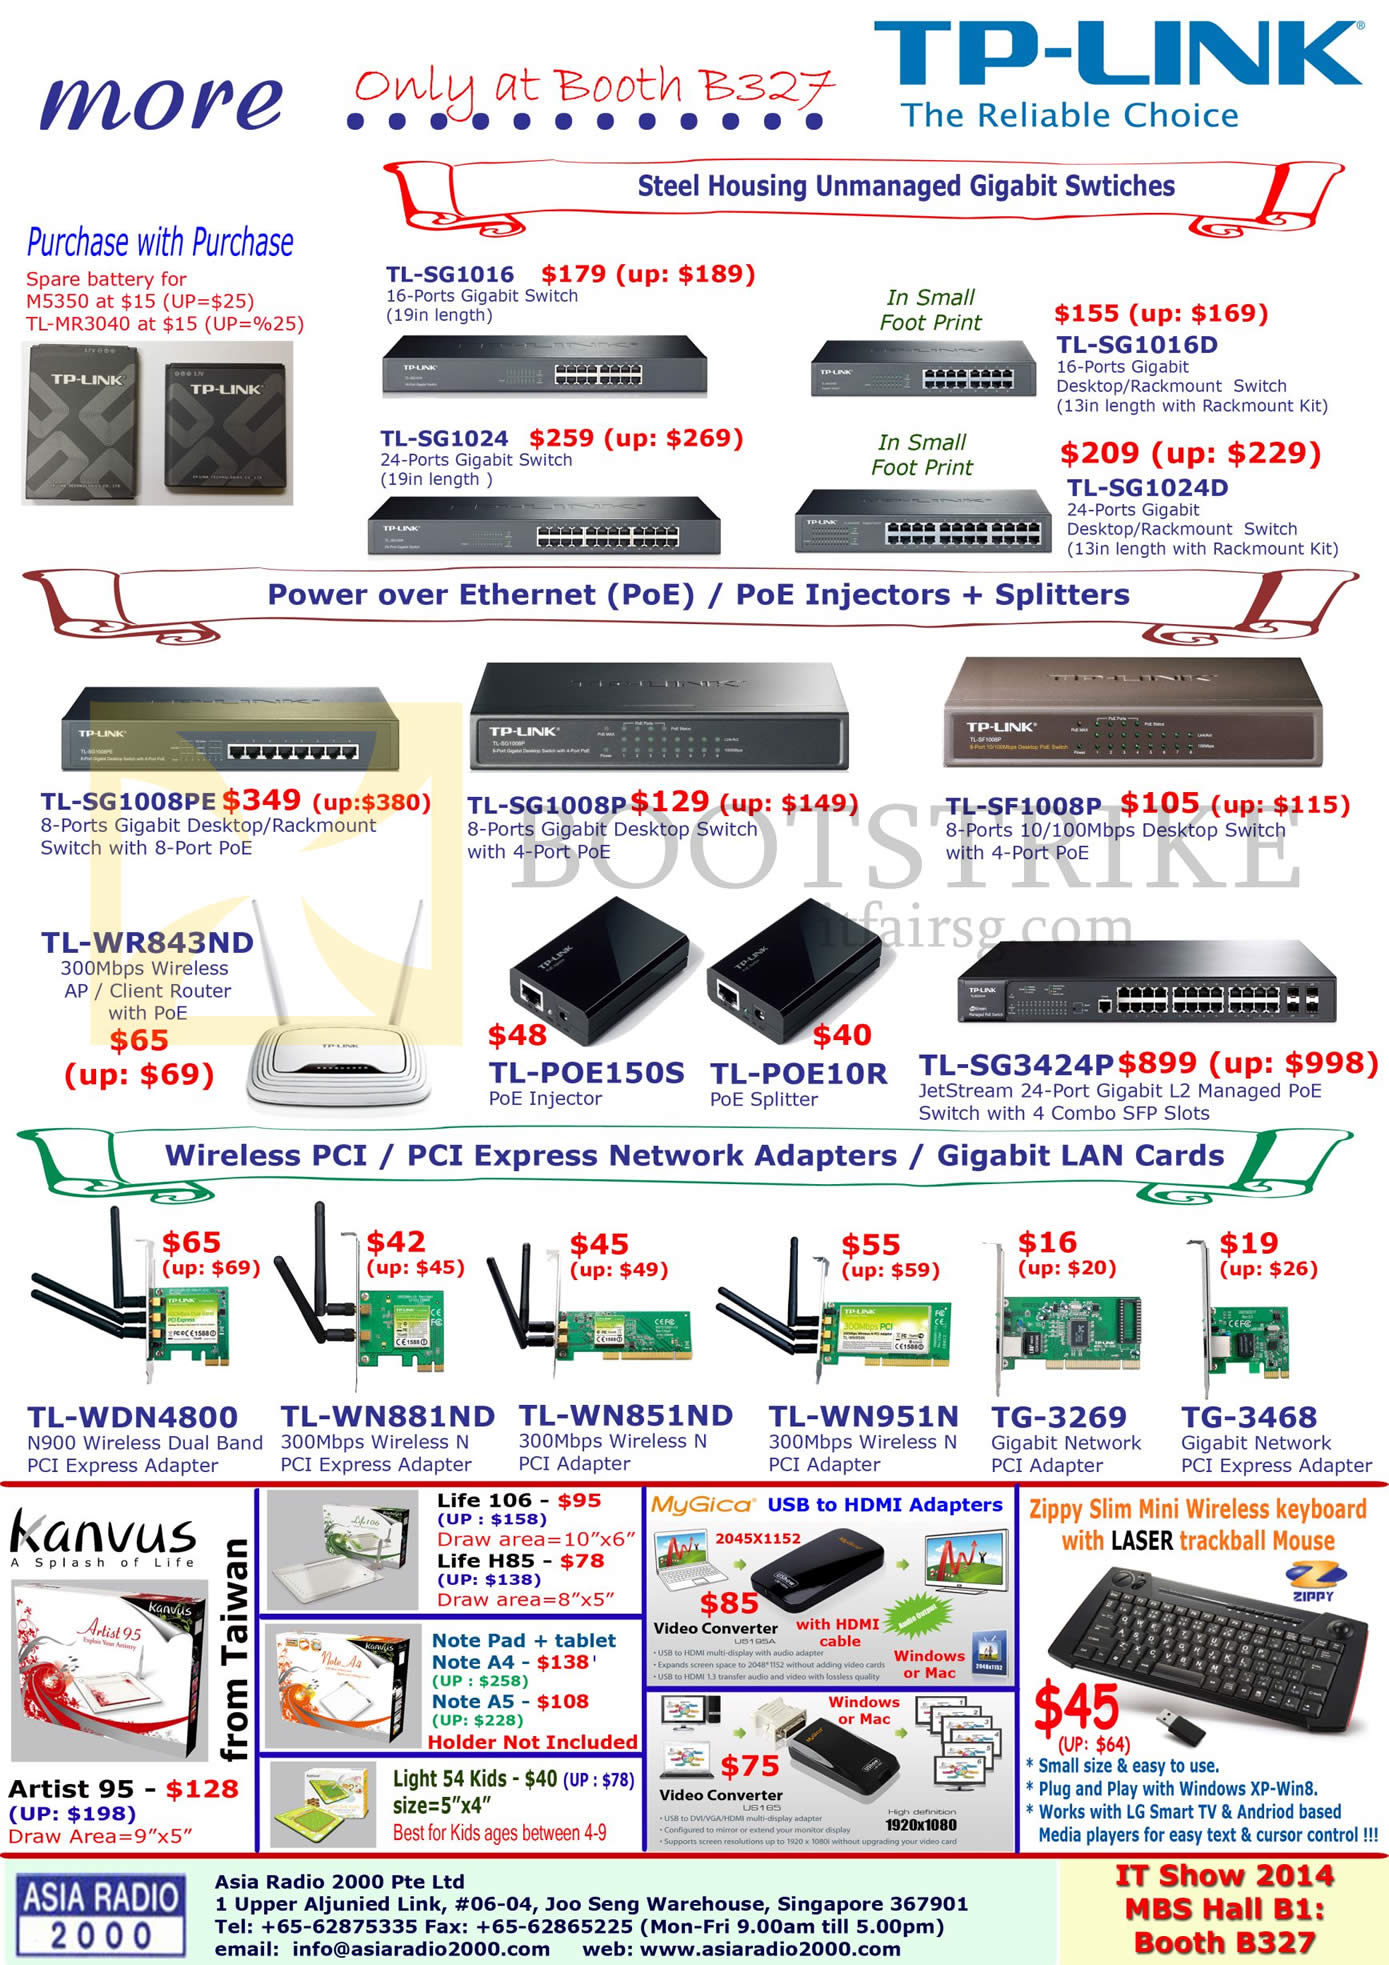 IT SHOW 2014 price list image brochure of Asia Radio TP-Link Networking Gigabit Switches, Wireless Routers, PCI Express Adapters, Kanvus, Life, Note Pad, MyGica USB HDMI, Zippy Keyboard